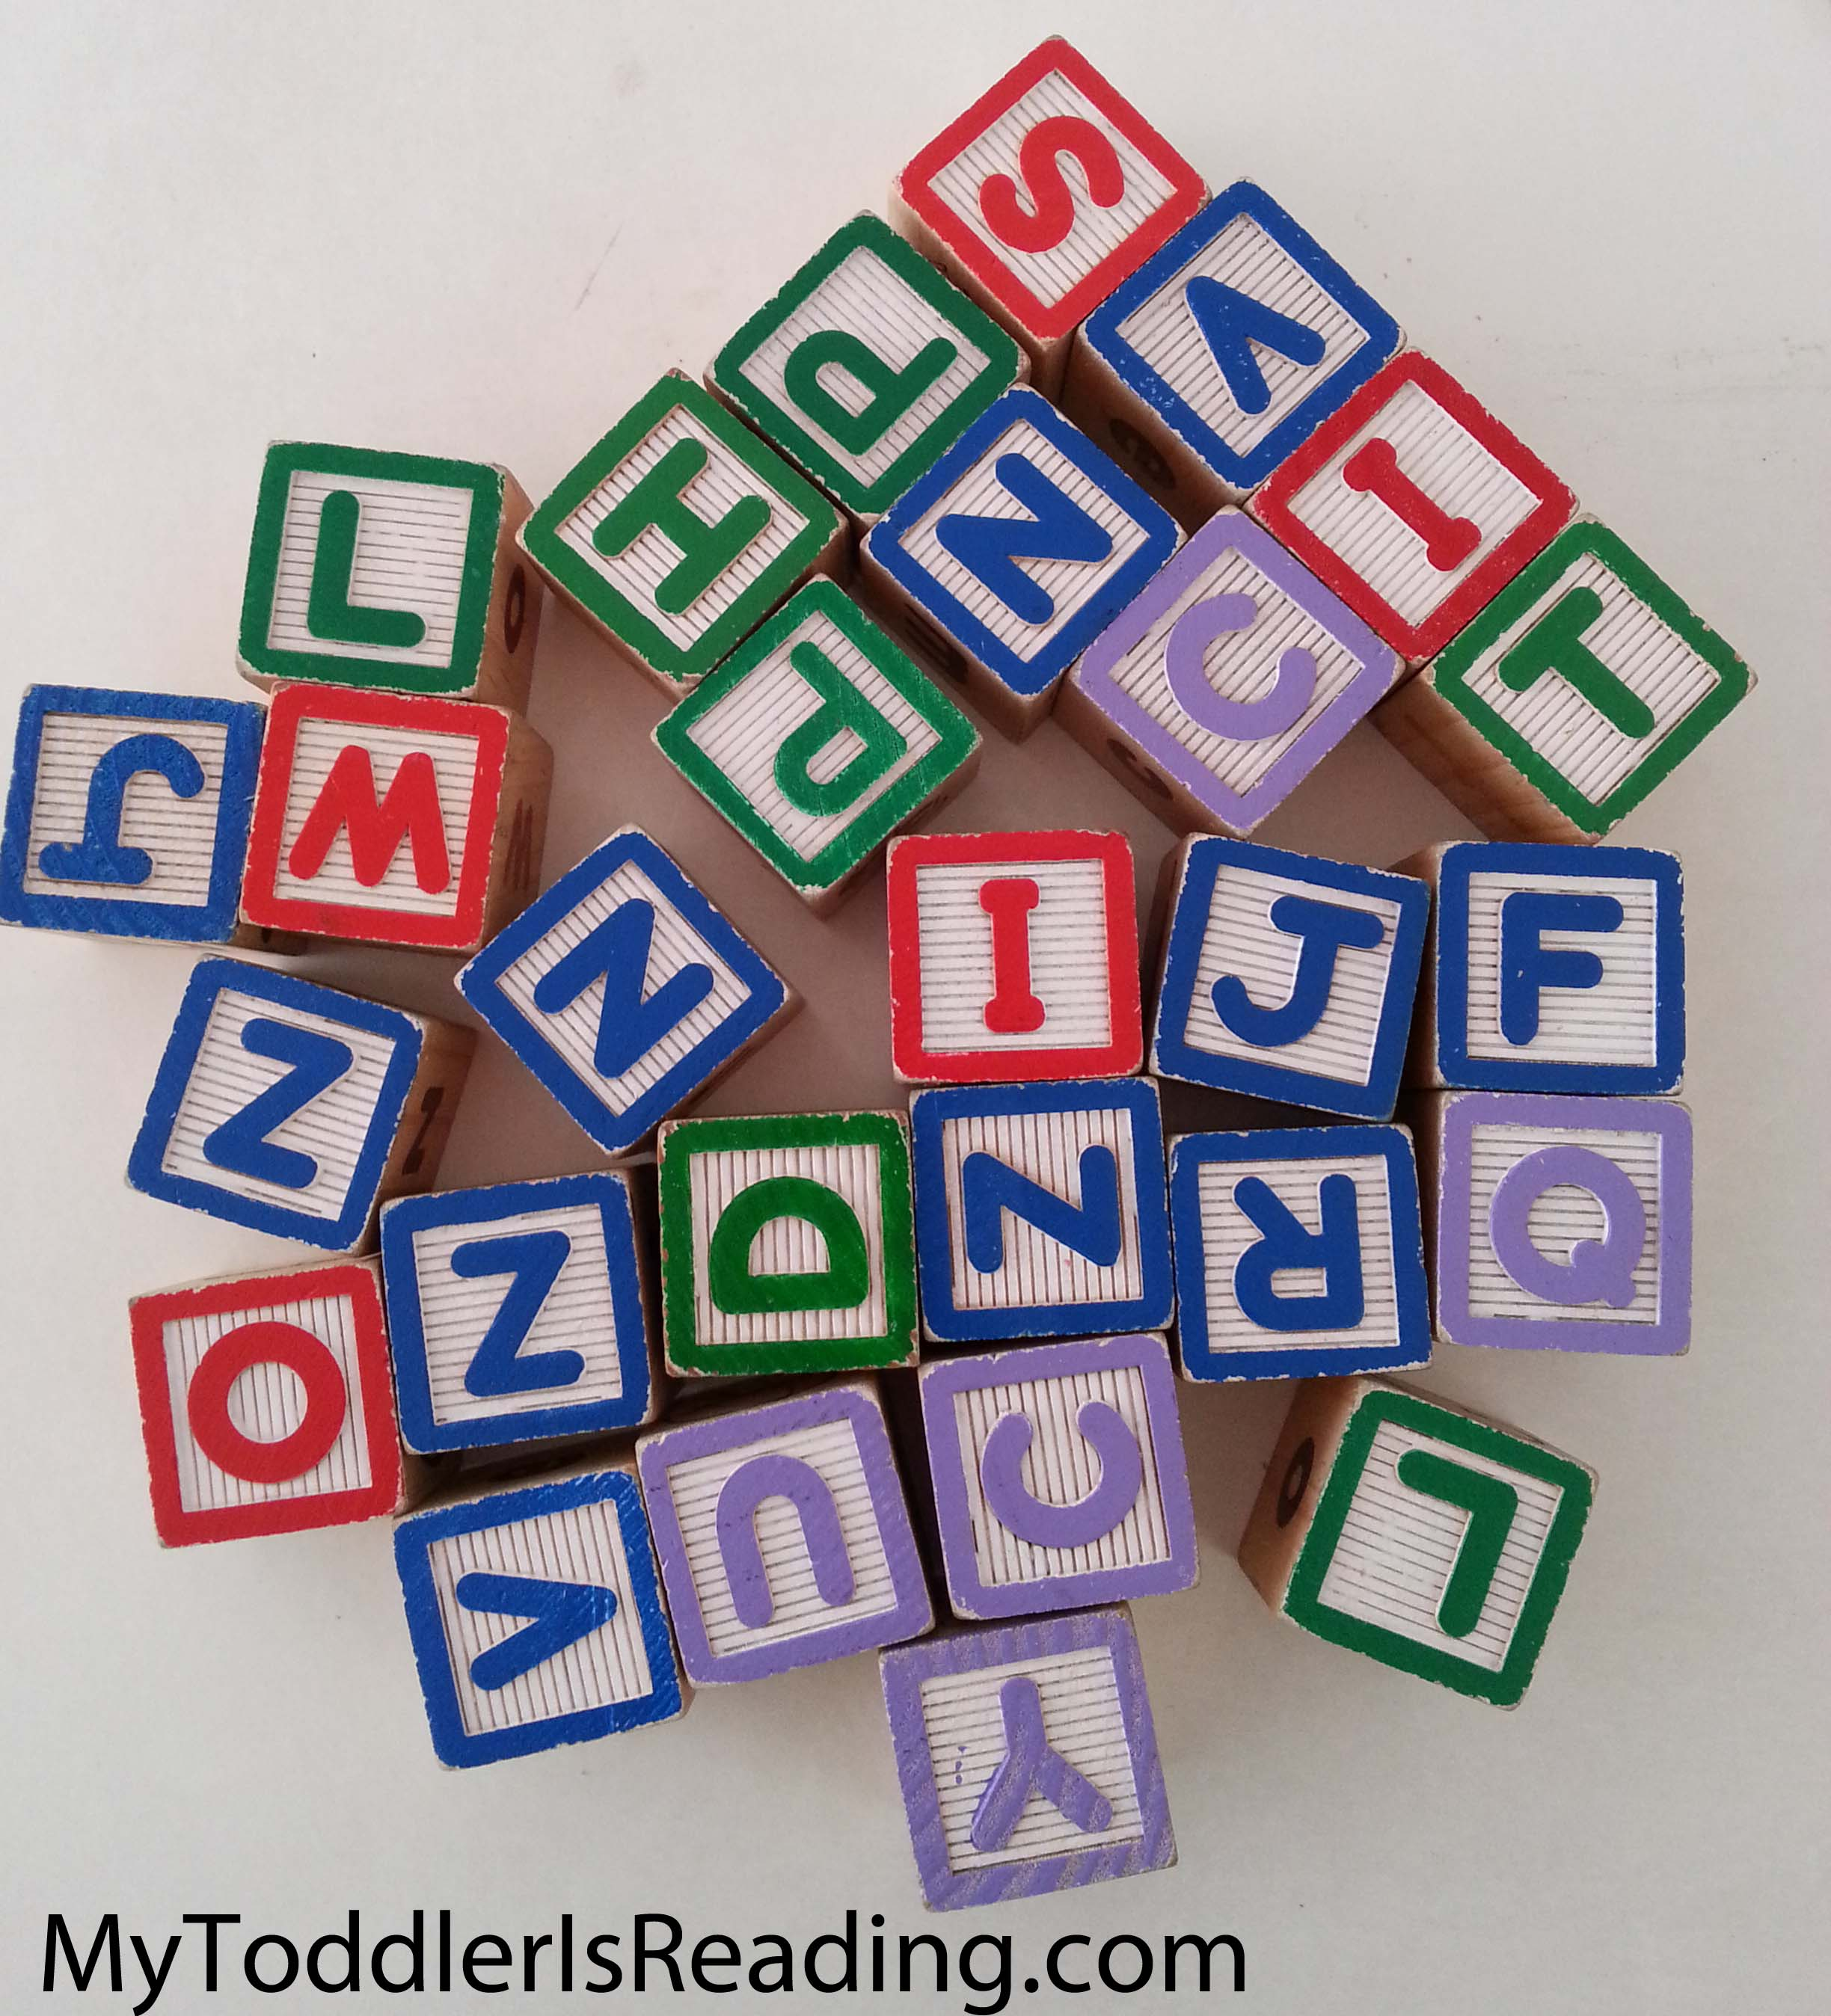 Wooden letters block to for stacking fun and for learning the alphabet.